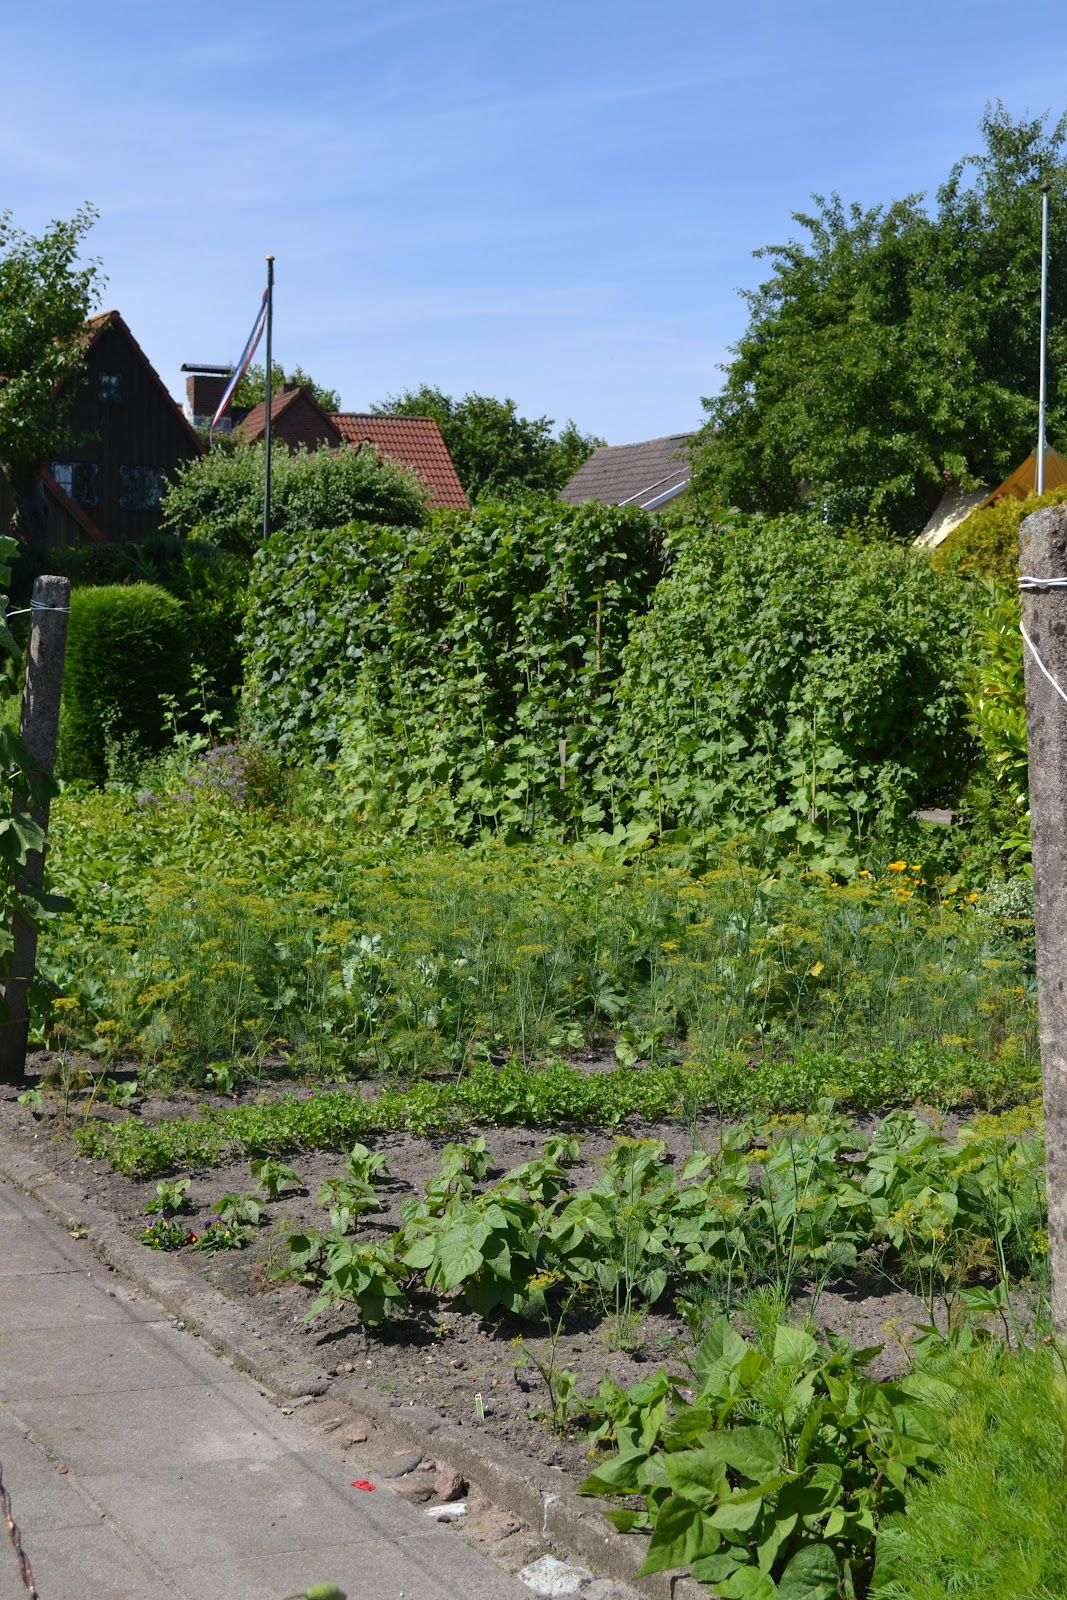 It's amazing that the Swiss think it's perfectly acceptable to have an edible garden in the front--right up to the street. Silly Swiss, don't you know that American homeowners' associations think veggie gardens should be tucked away, out of sight? ;-)